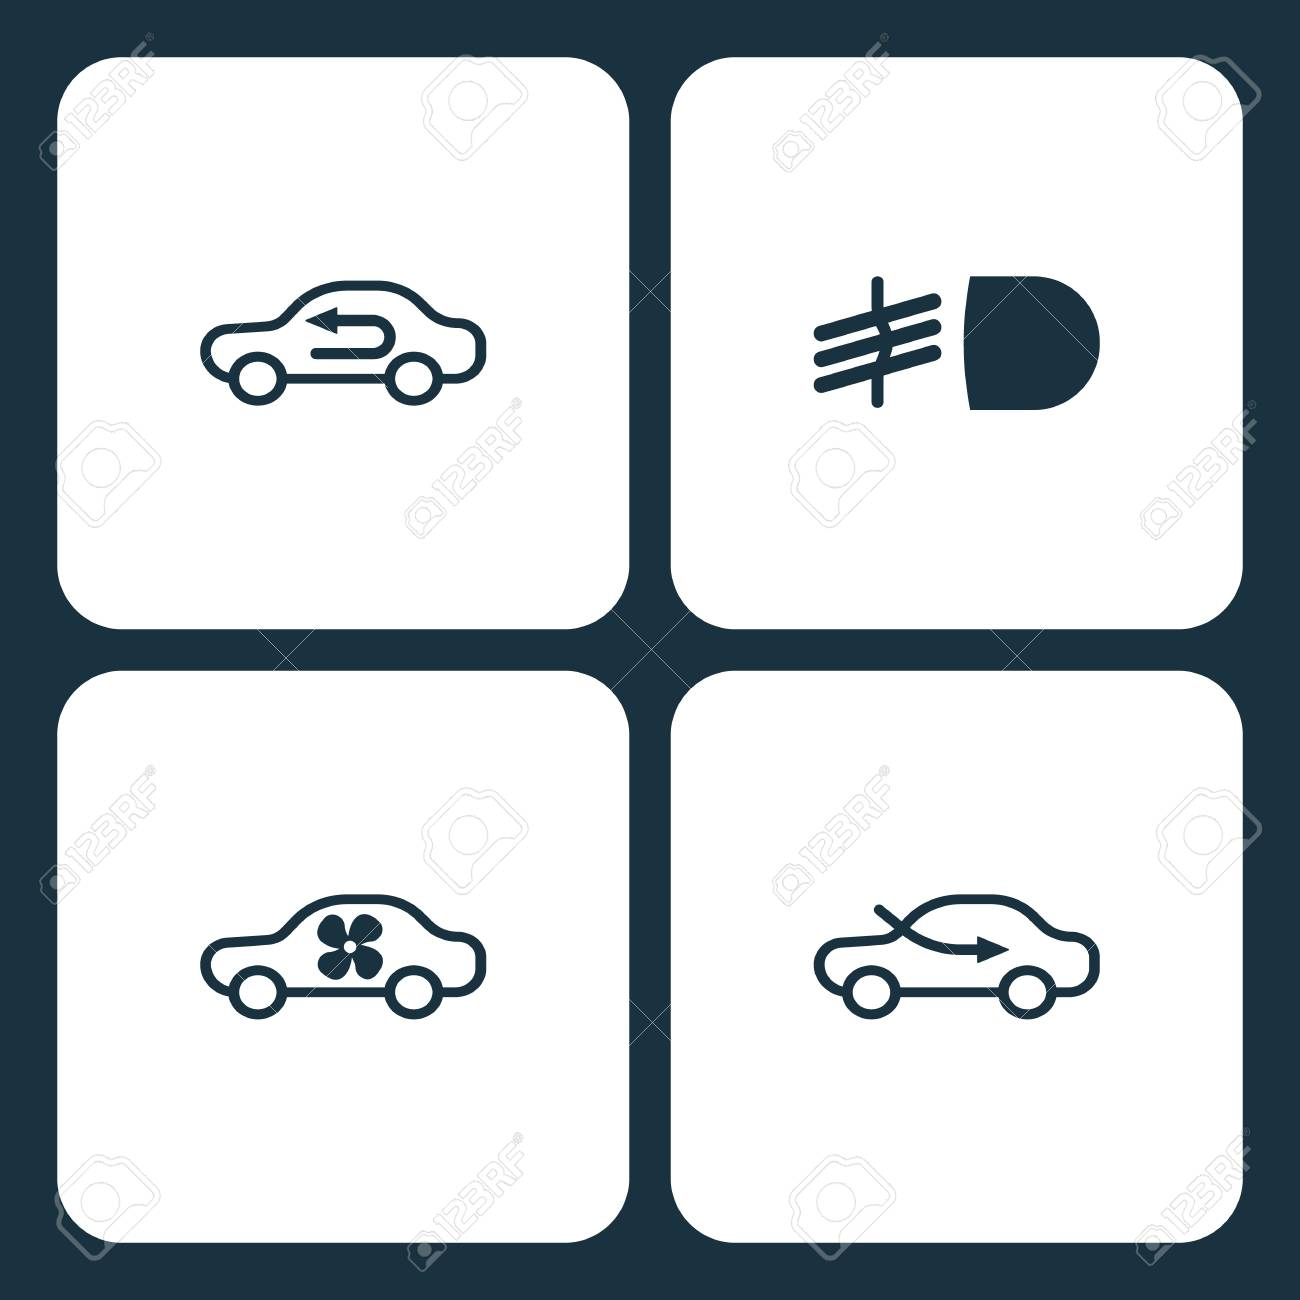 Vector Illustration Set Car Dashboard Icons Elements Air Control - Car image sign of dashboardcar dashboard icons stock images royaltyfree imagesvectors